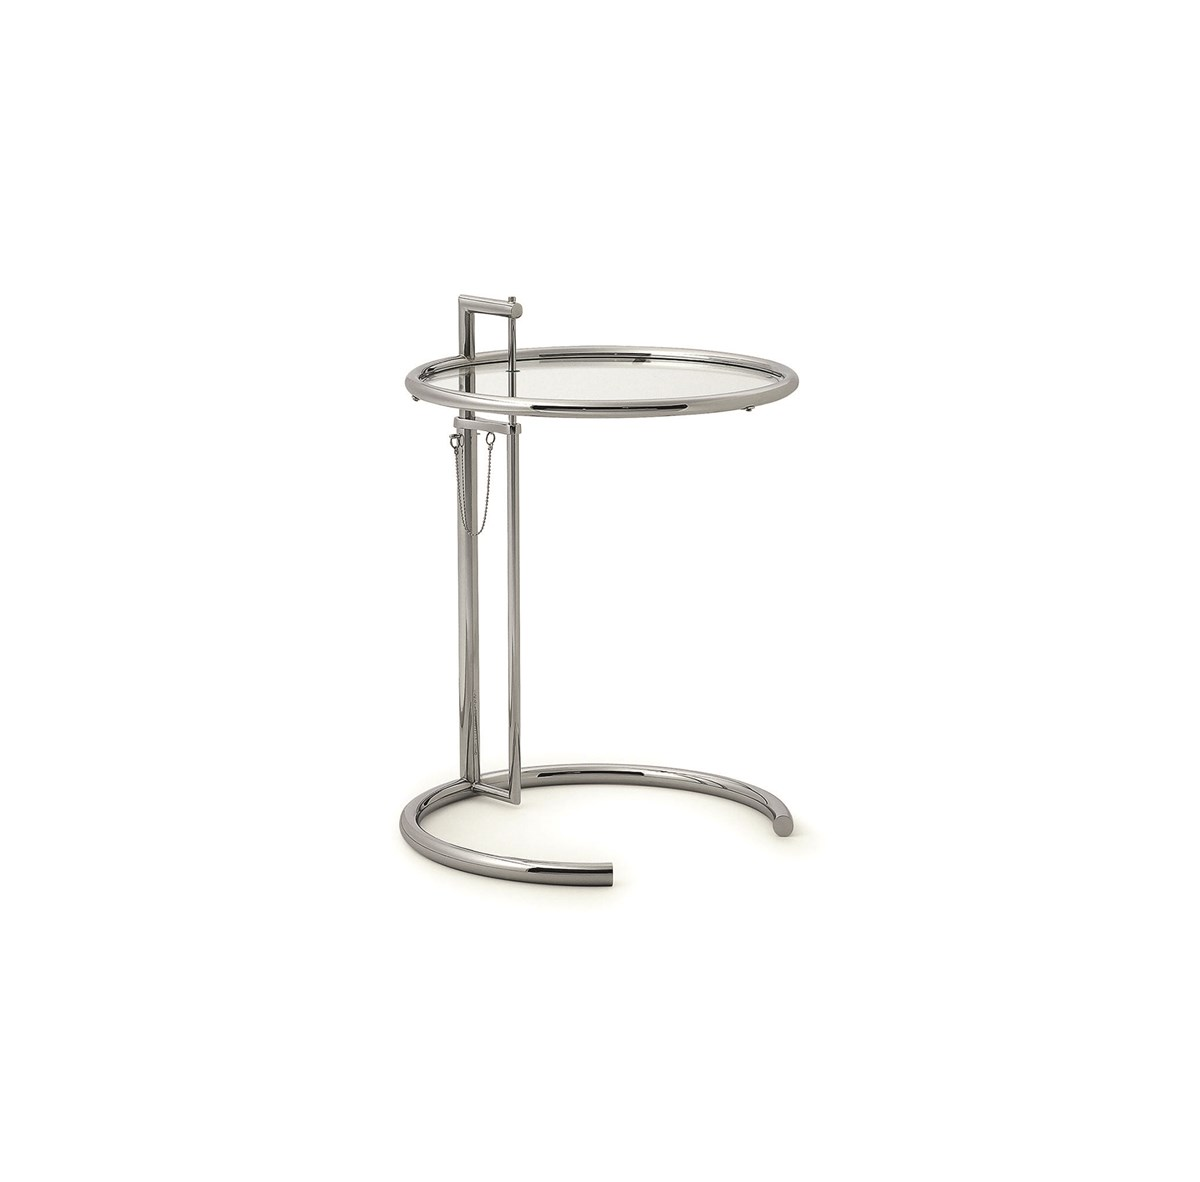 ClassiconAdjustable Table Stainless